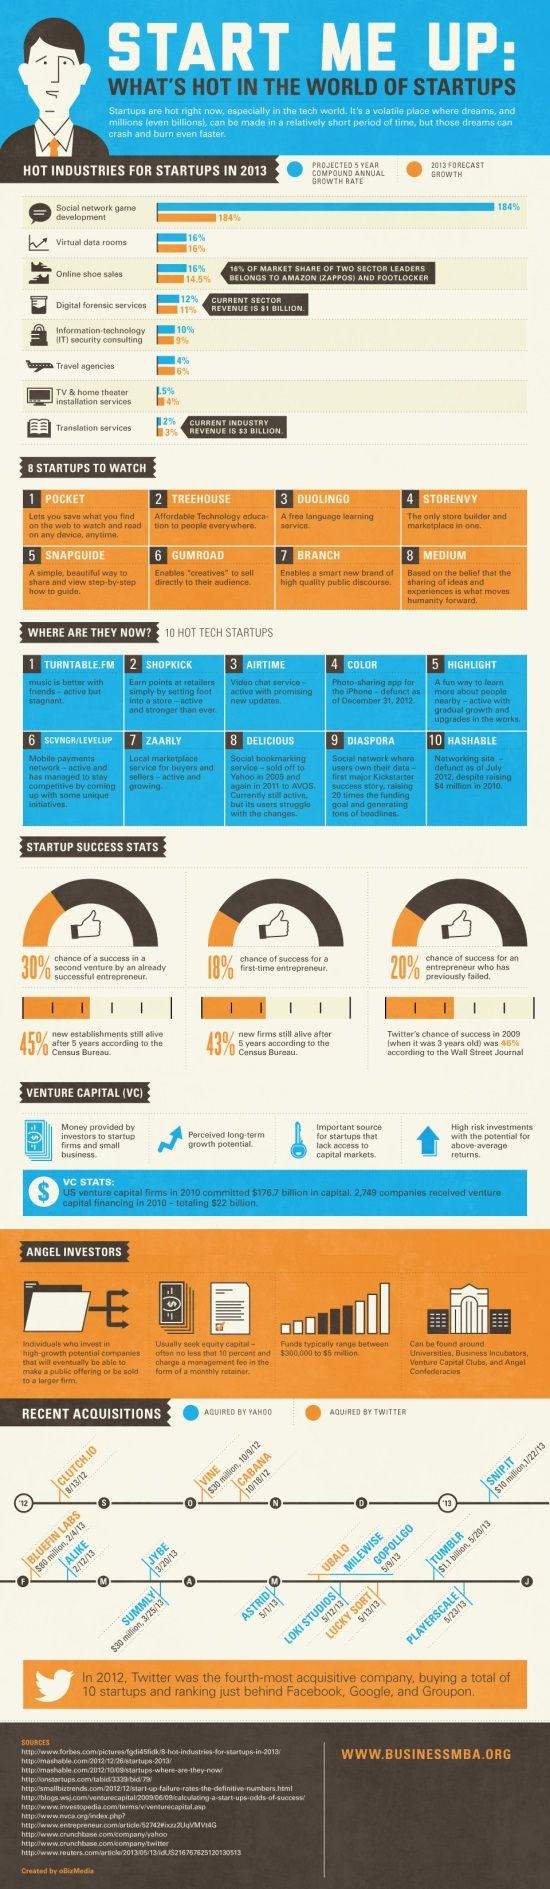 Startup State July 2013. What's hot in the world of startups. #trends #stats #acquisitions